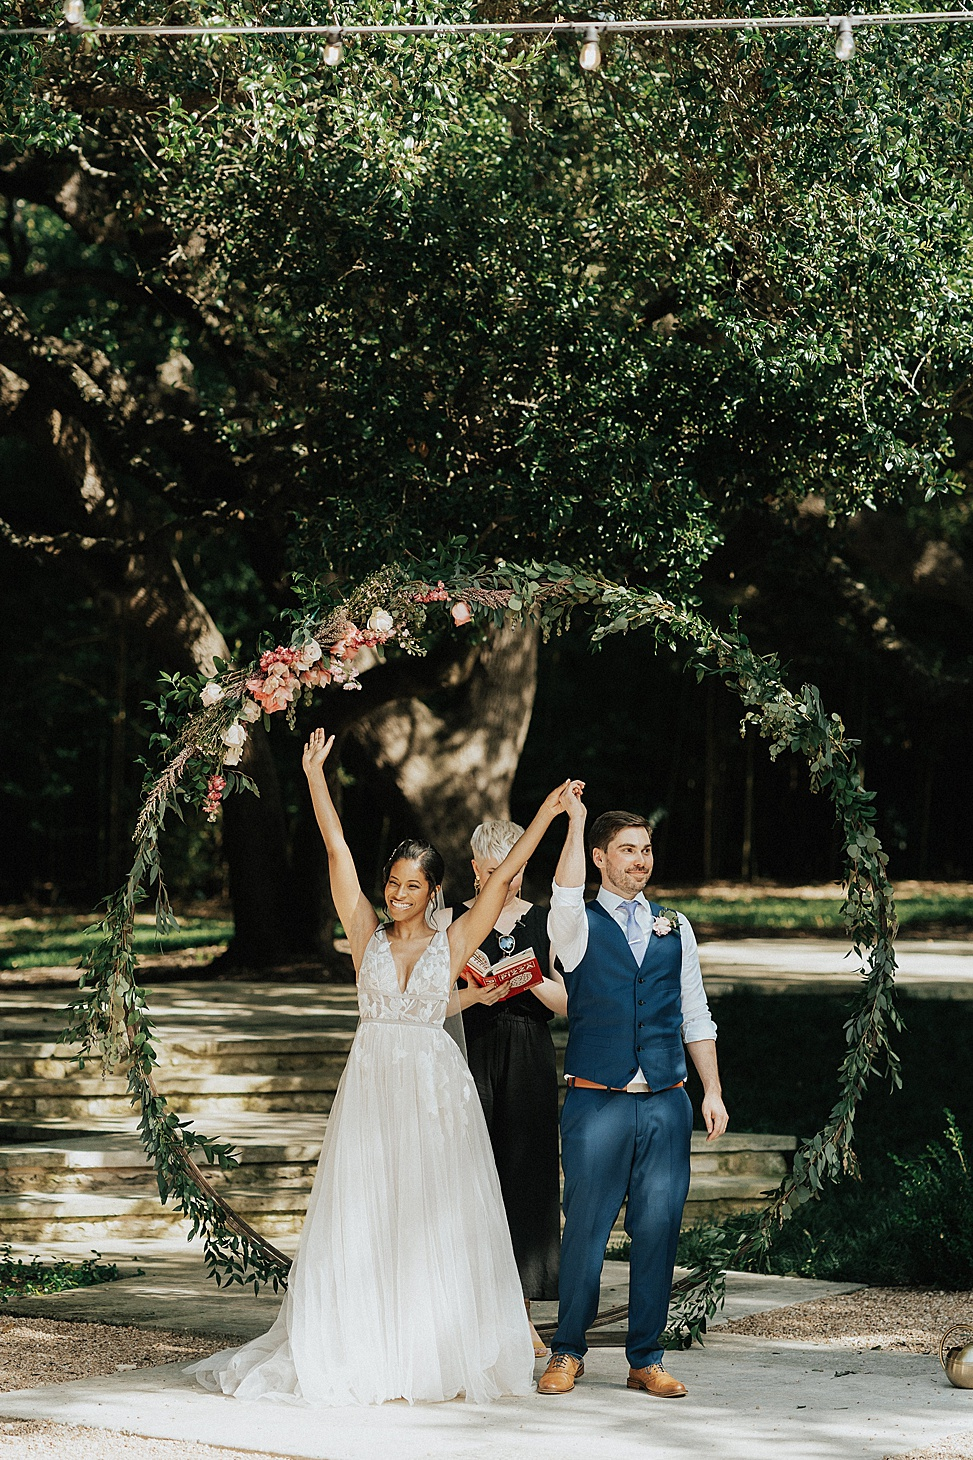 The wedding arch was done with greenery, pink and blush blooms